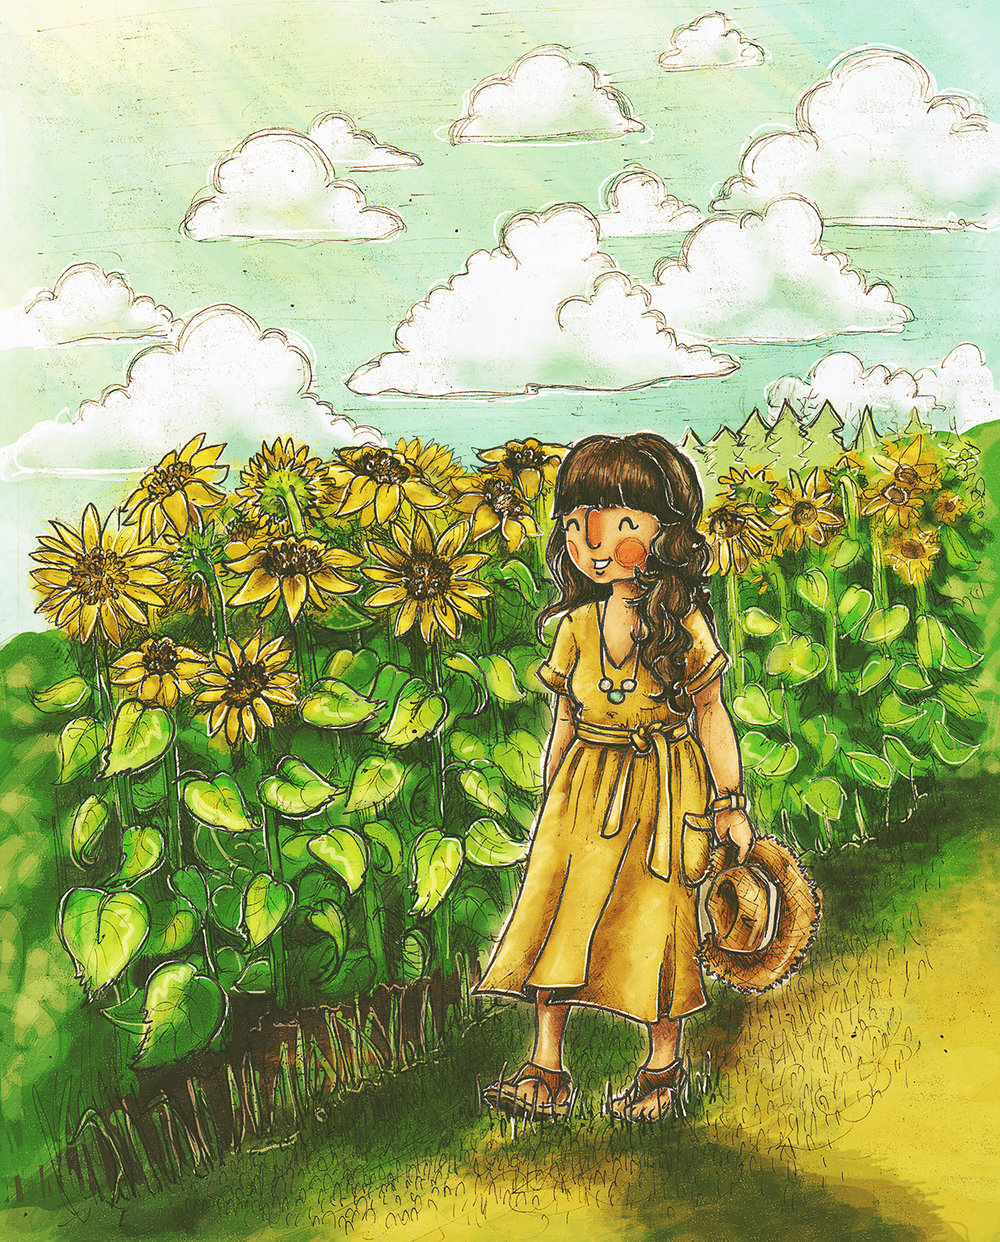 Melissa & the Sunflowers